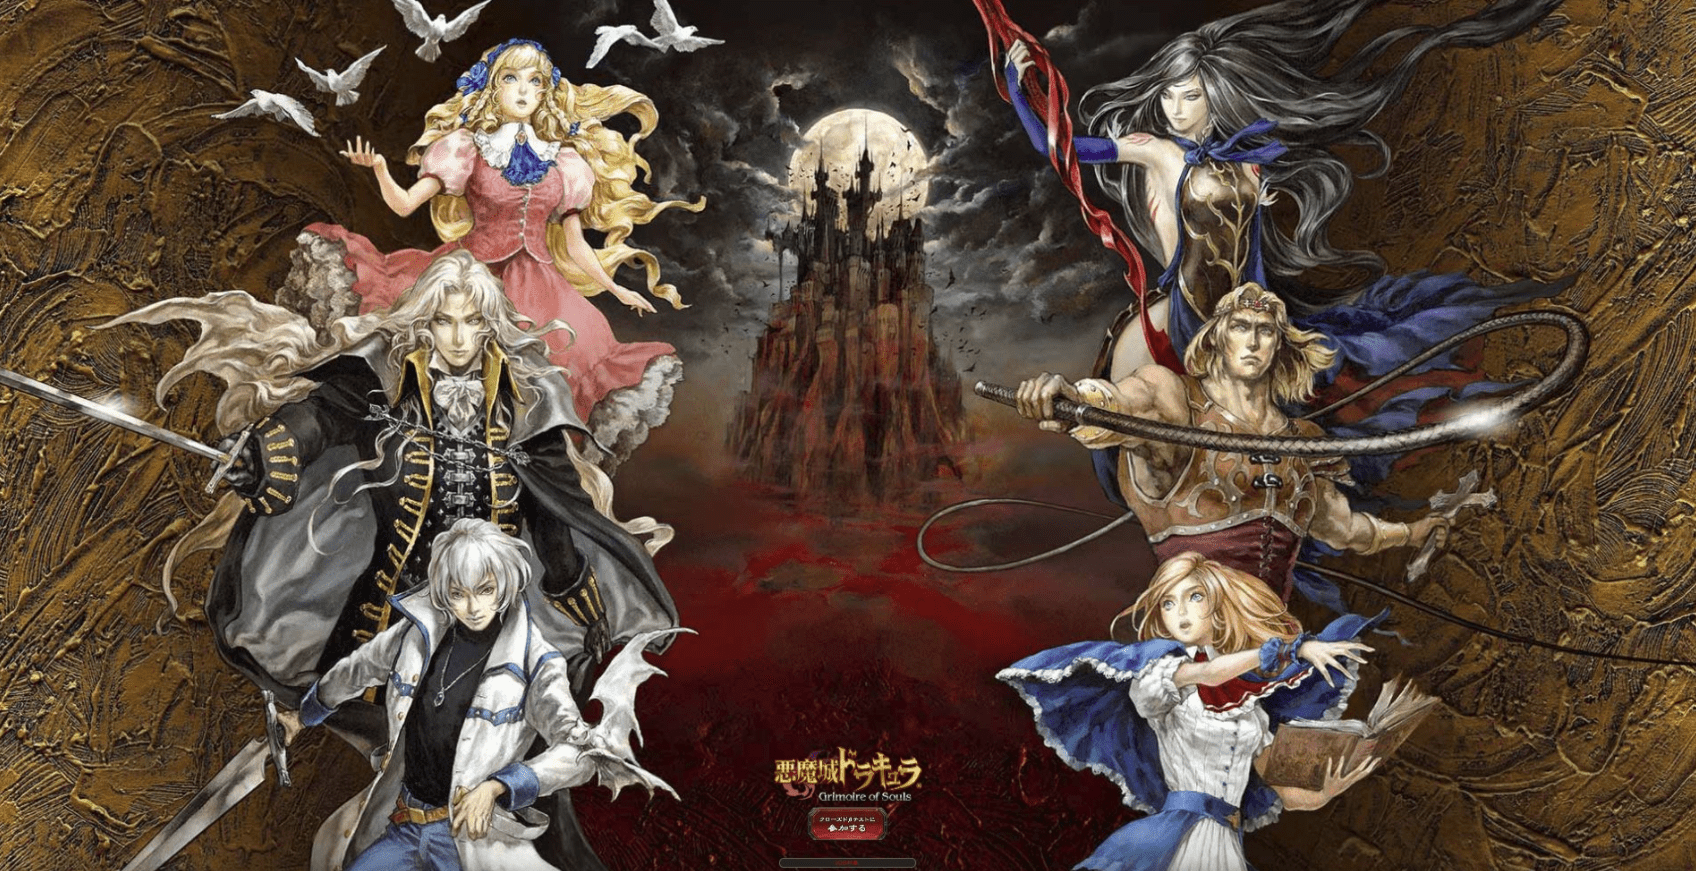 Konami is developing a new 'Castlevania' game for iPhone